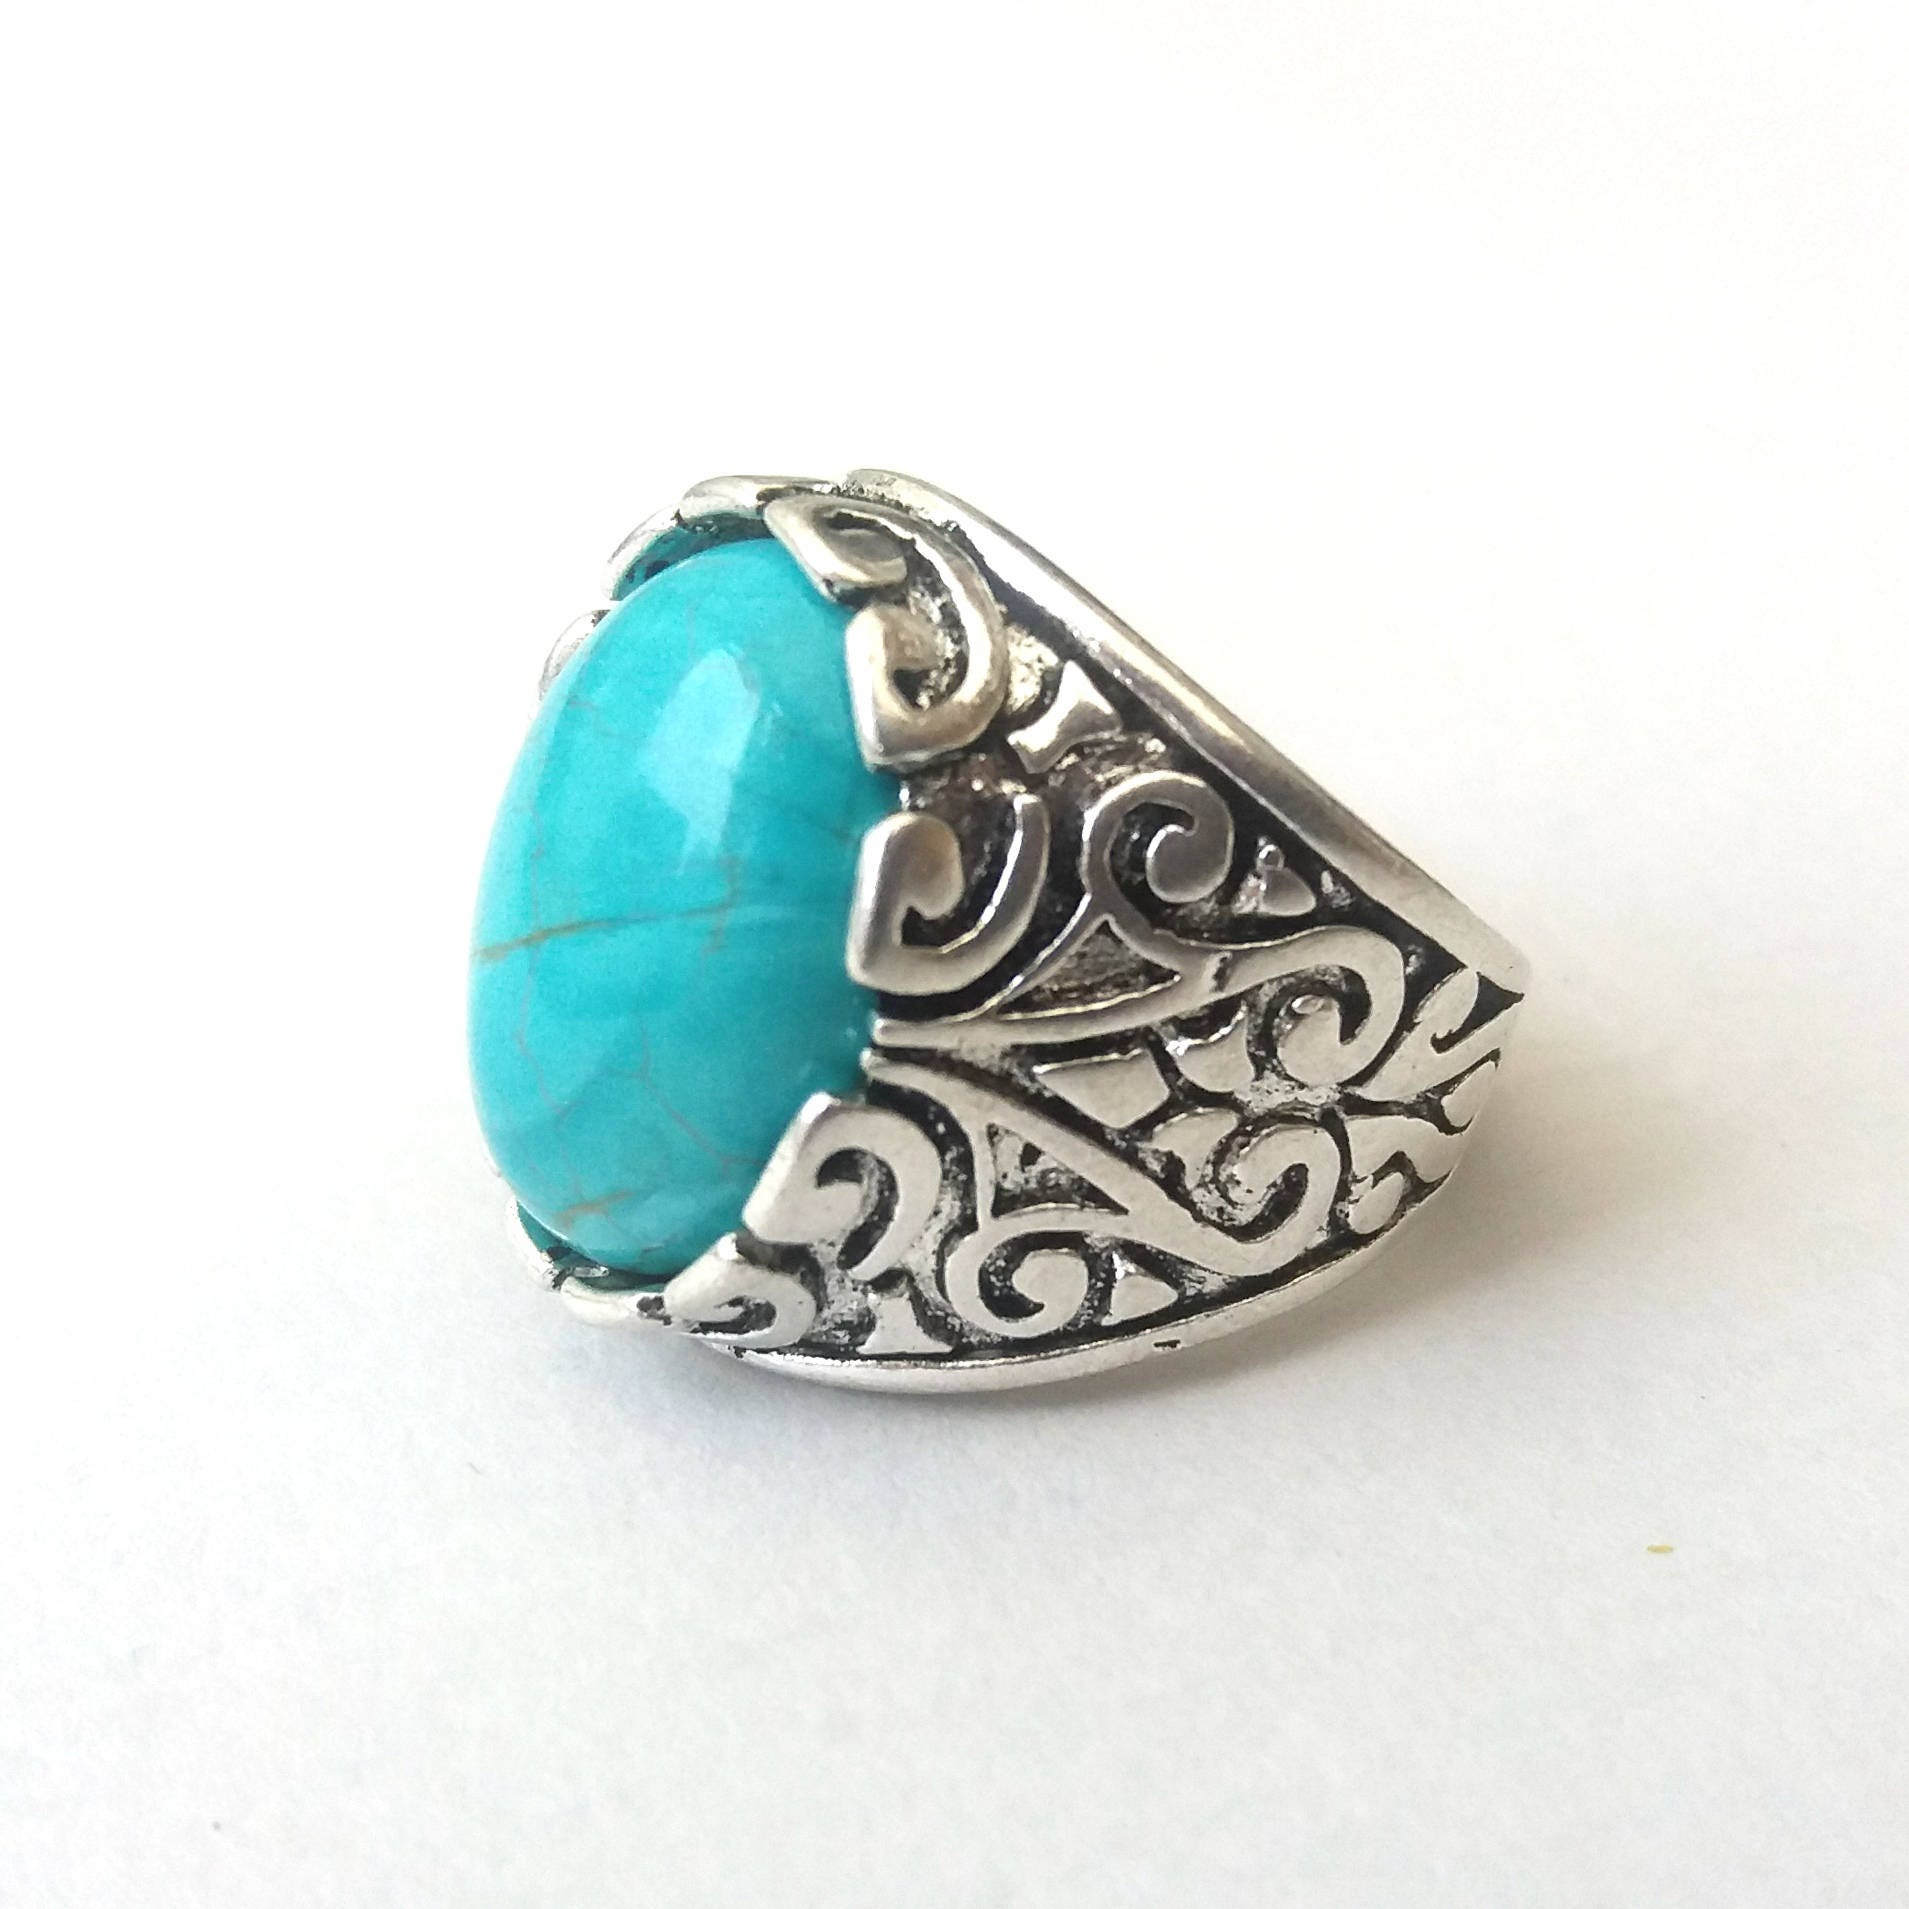 Chunky Blue Elizabethan Style Turquoise Ring Antiqued Silver Adjustable Ring Cocktail Ring Boho Ring Festival Fashion